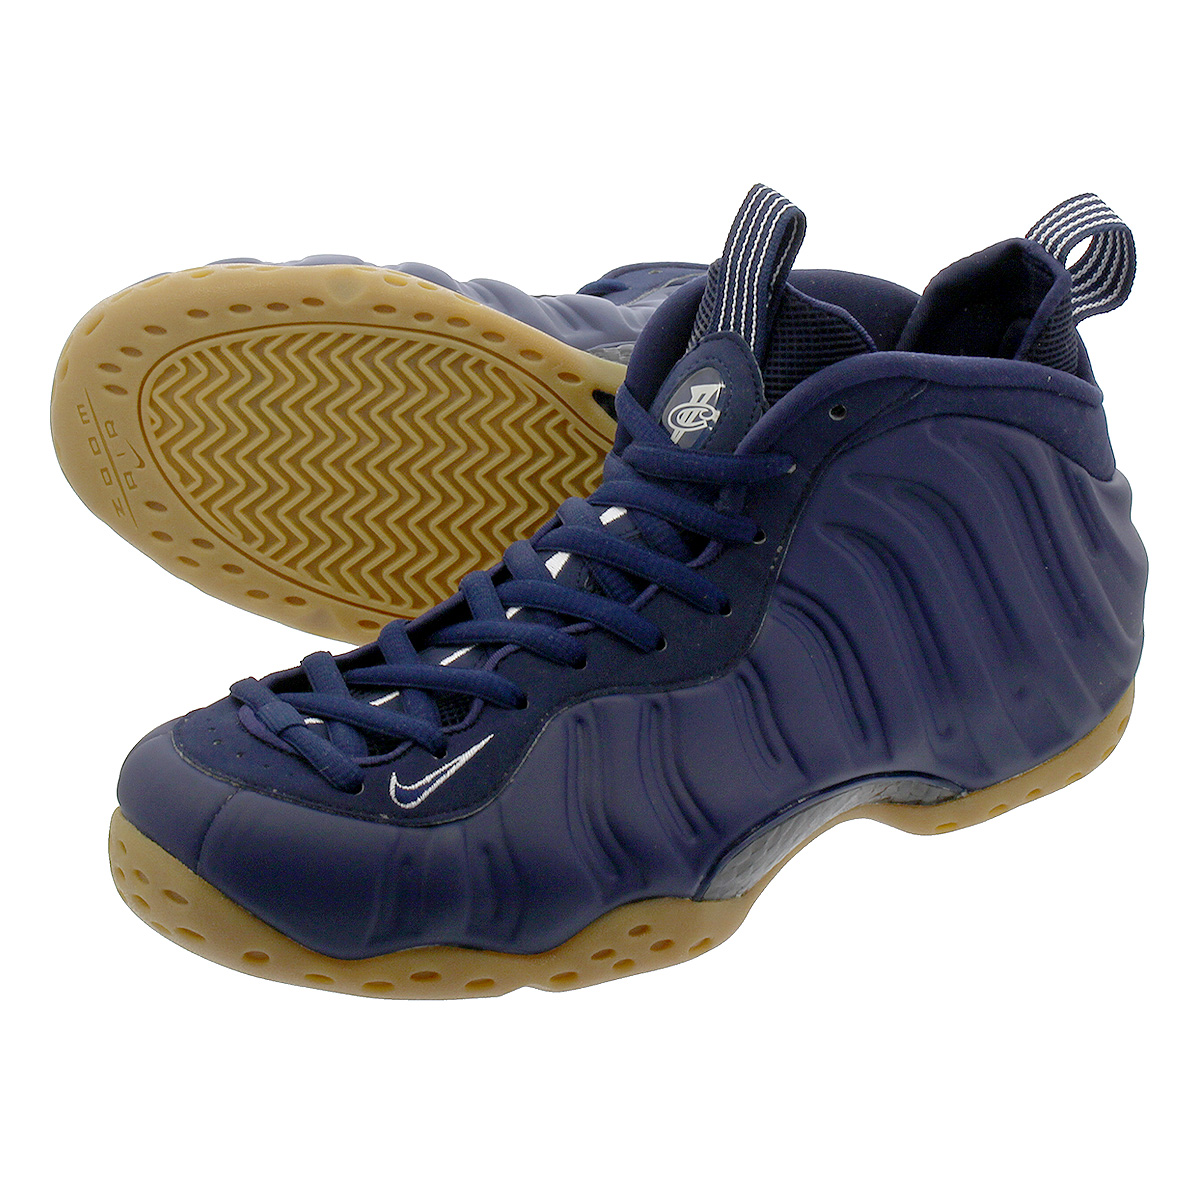 promo code 5bf21 0e0f6 NIKE AIR FOAMPOSITE ONE ナイキエアフォームポジットワン MIDNIGHT NAVY/GUM LIGHT BROWN  314,996-405